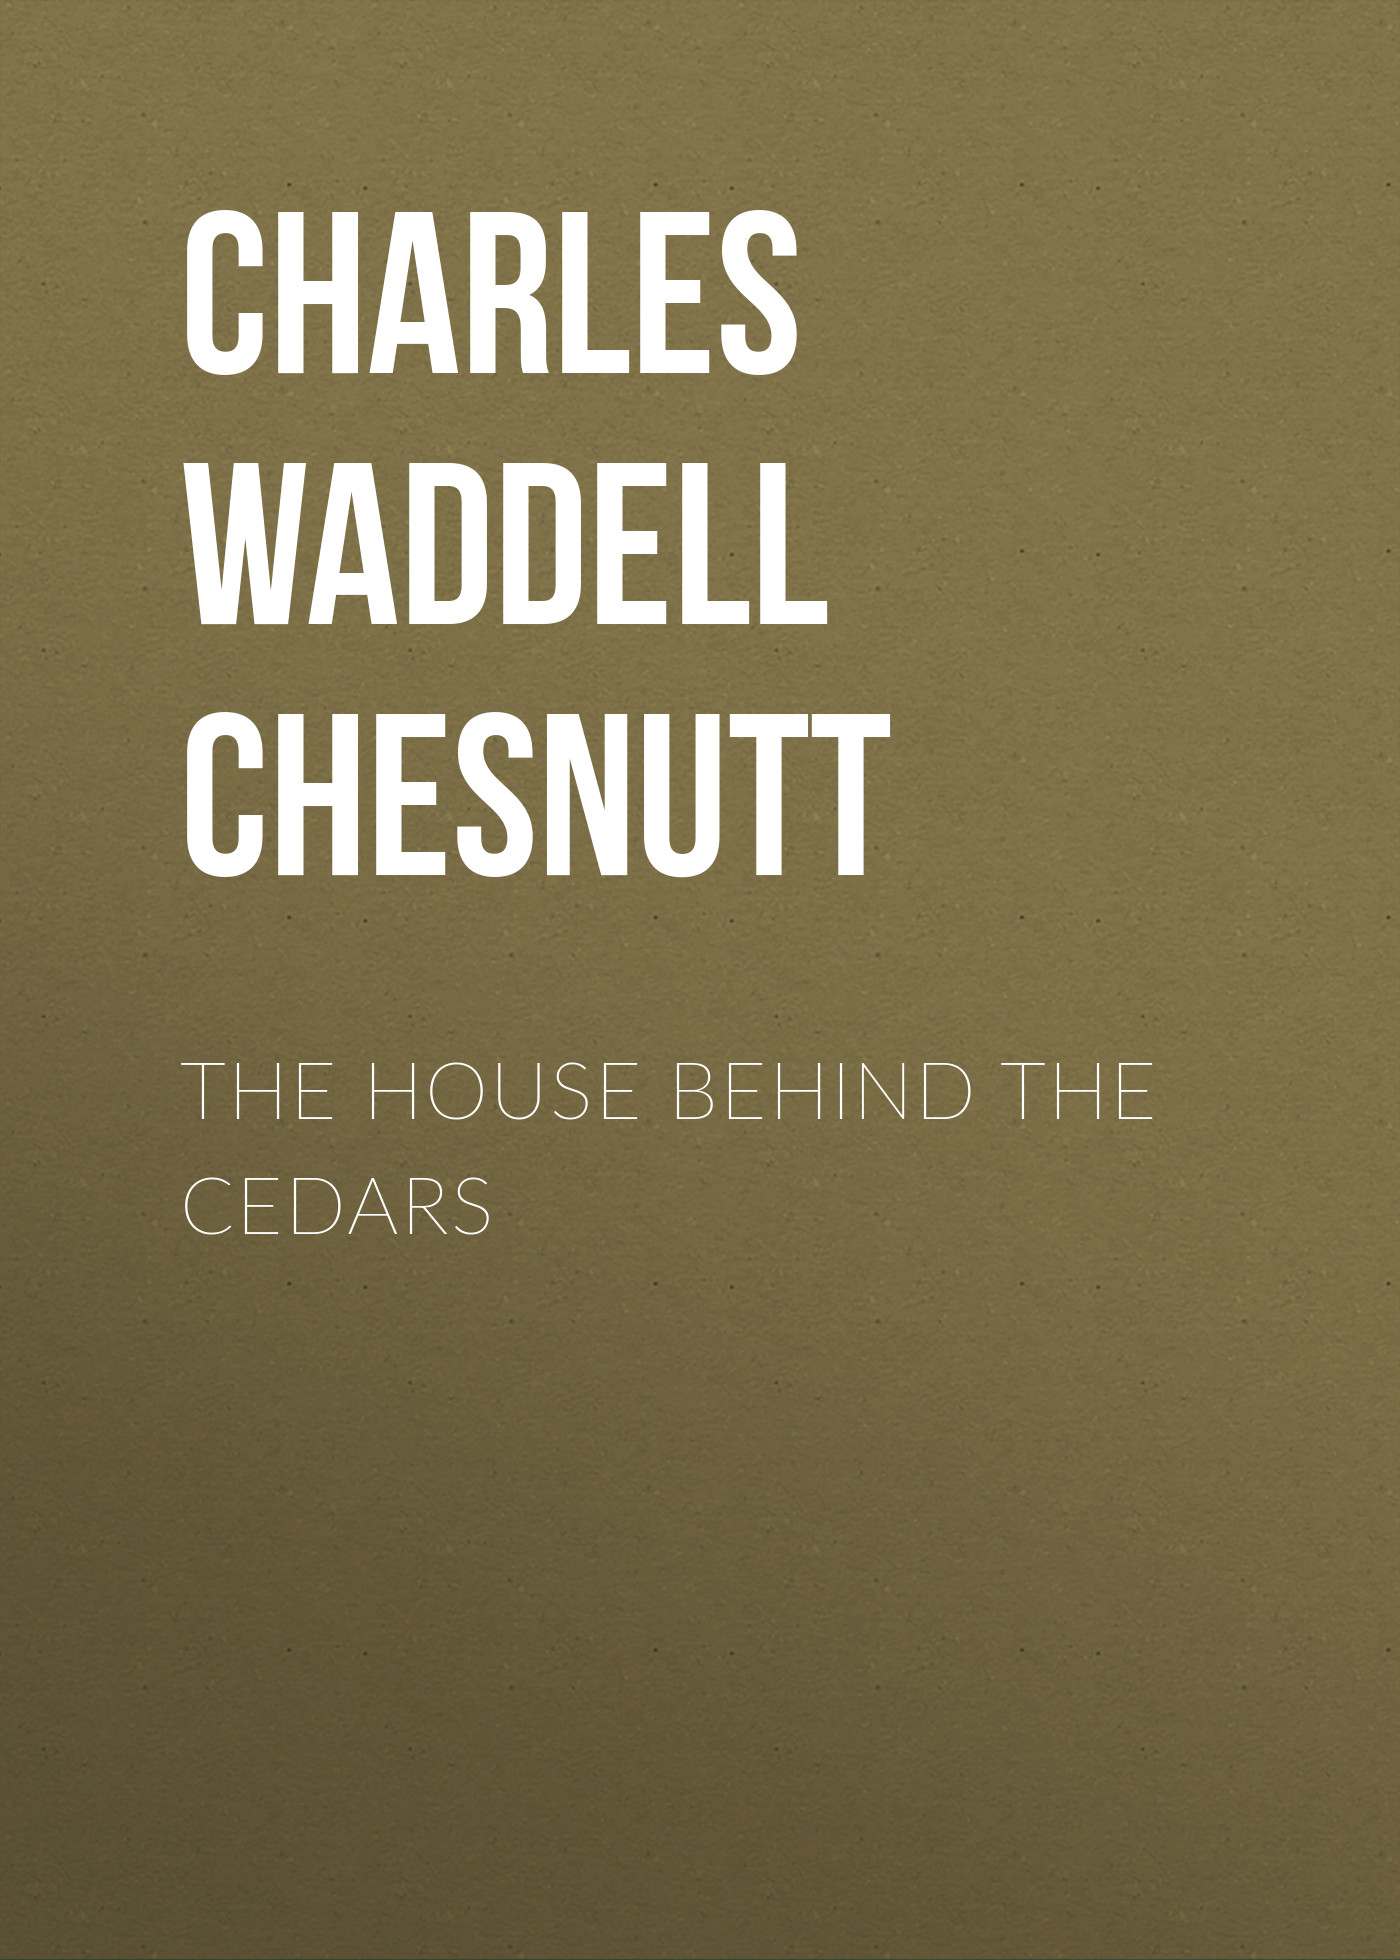 Charles Waddell Chesnutt The House Behind the Cedars